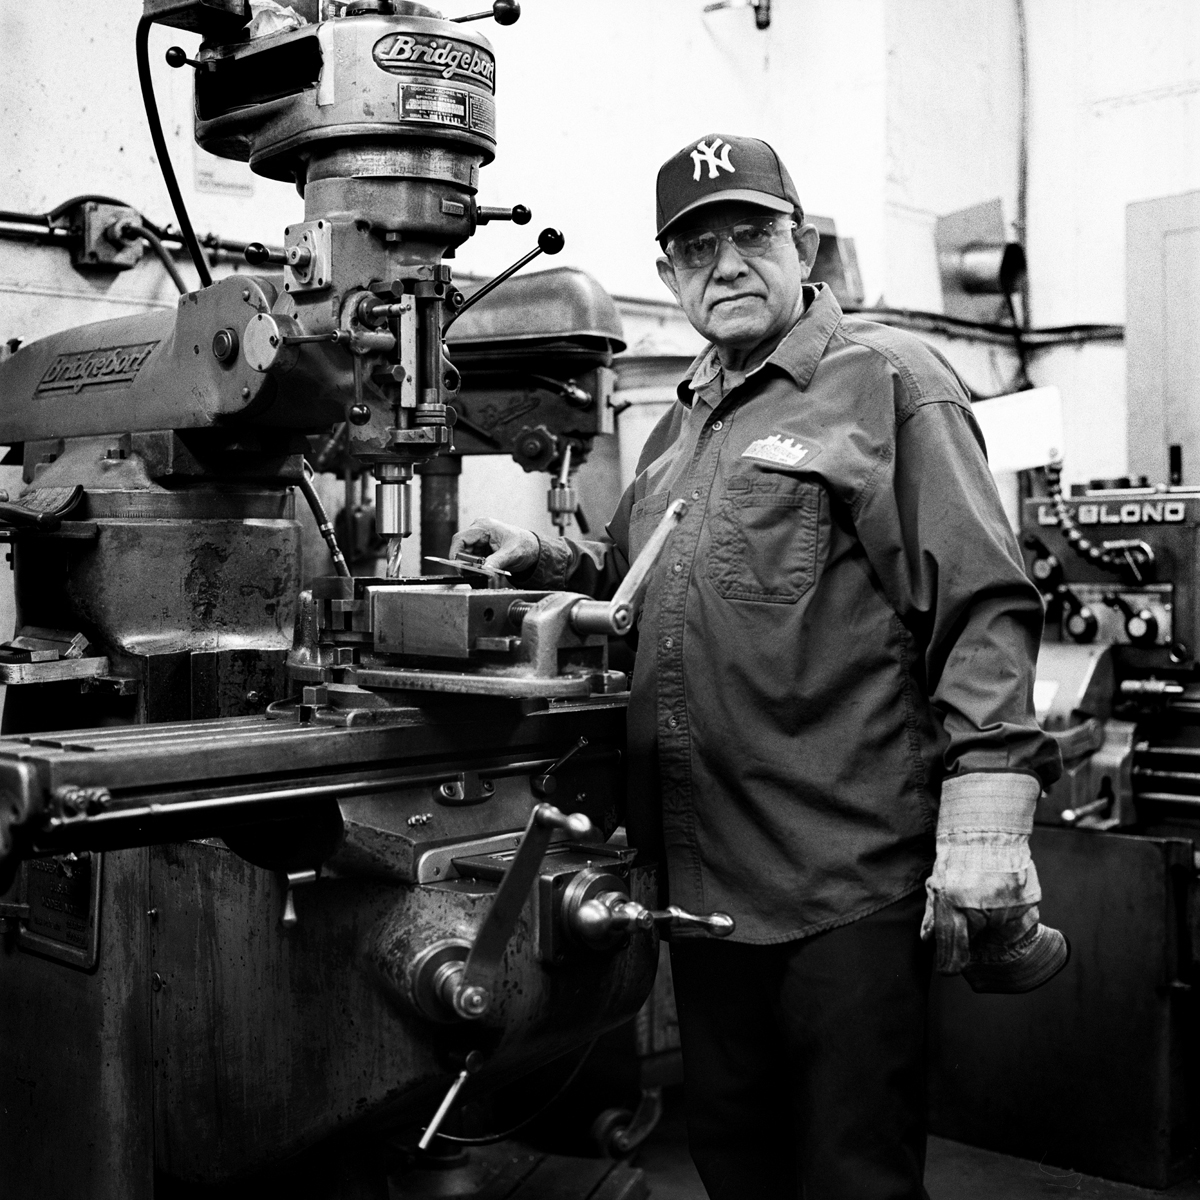 Mario, Reinforcing Supply shop machinist, stands by his driller. The machines used at Reinforcing Supply are all made and maintained in house. Williamsburg, Brooklyn, New York. A makeshift memorial for Thomas R. Dolphin was put up near the intersection of Meeker Avenue and Gardner Avenue in Greenpoint, Brooklyn, N.Y. (Photo by Dakota Santiago/GroundTruth)